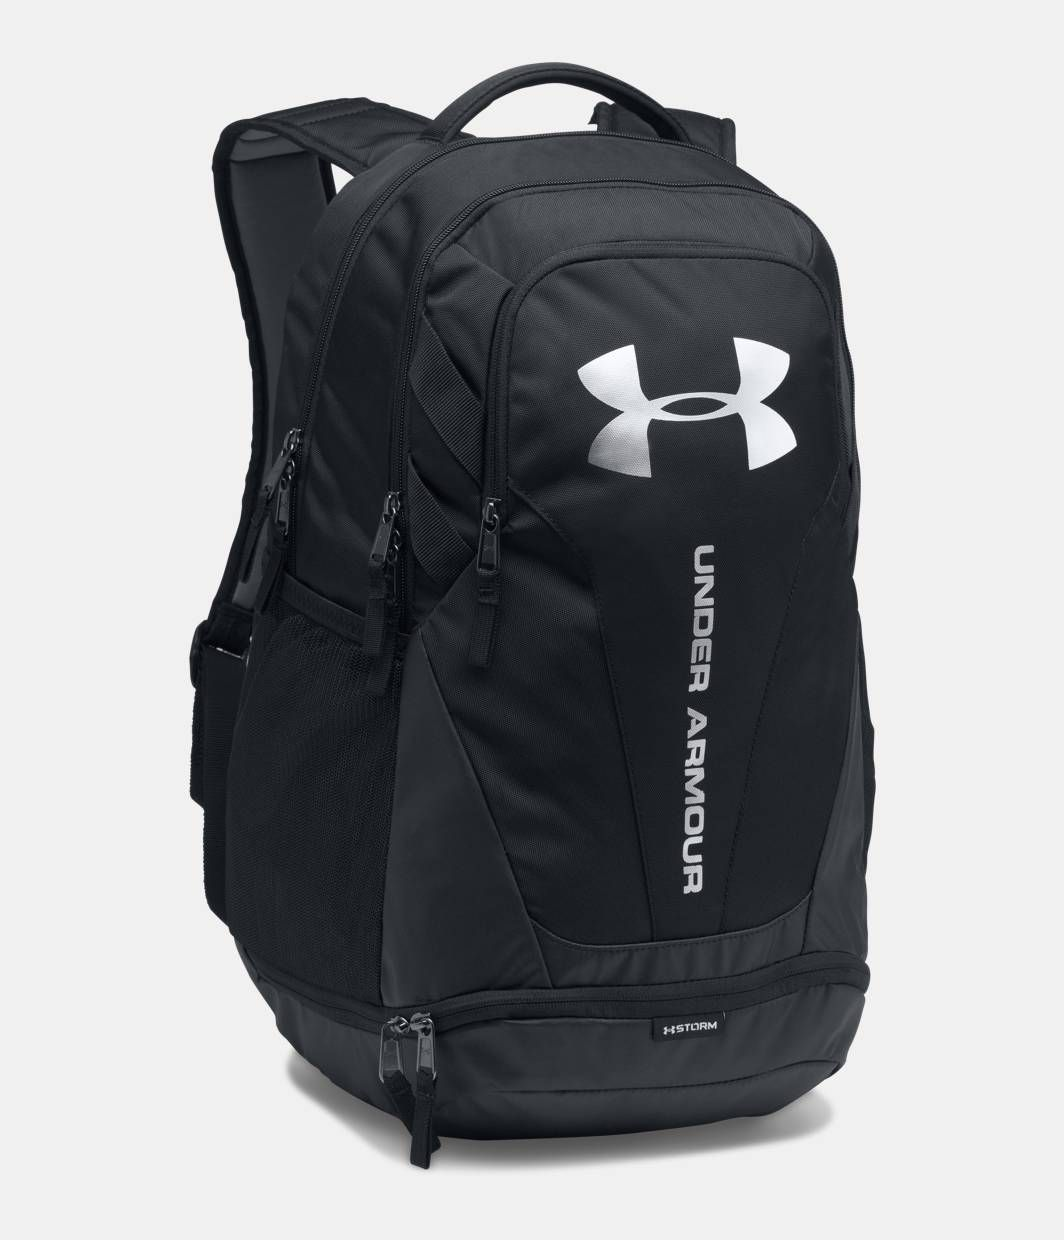 Under Armour Recruit Backpack Black Light Blue - Backpacks at ... 54ced79e4b2db